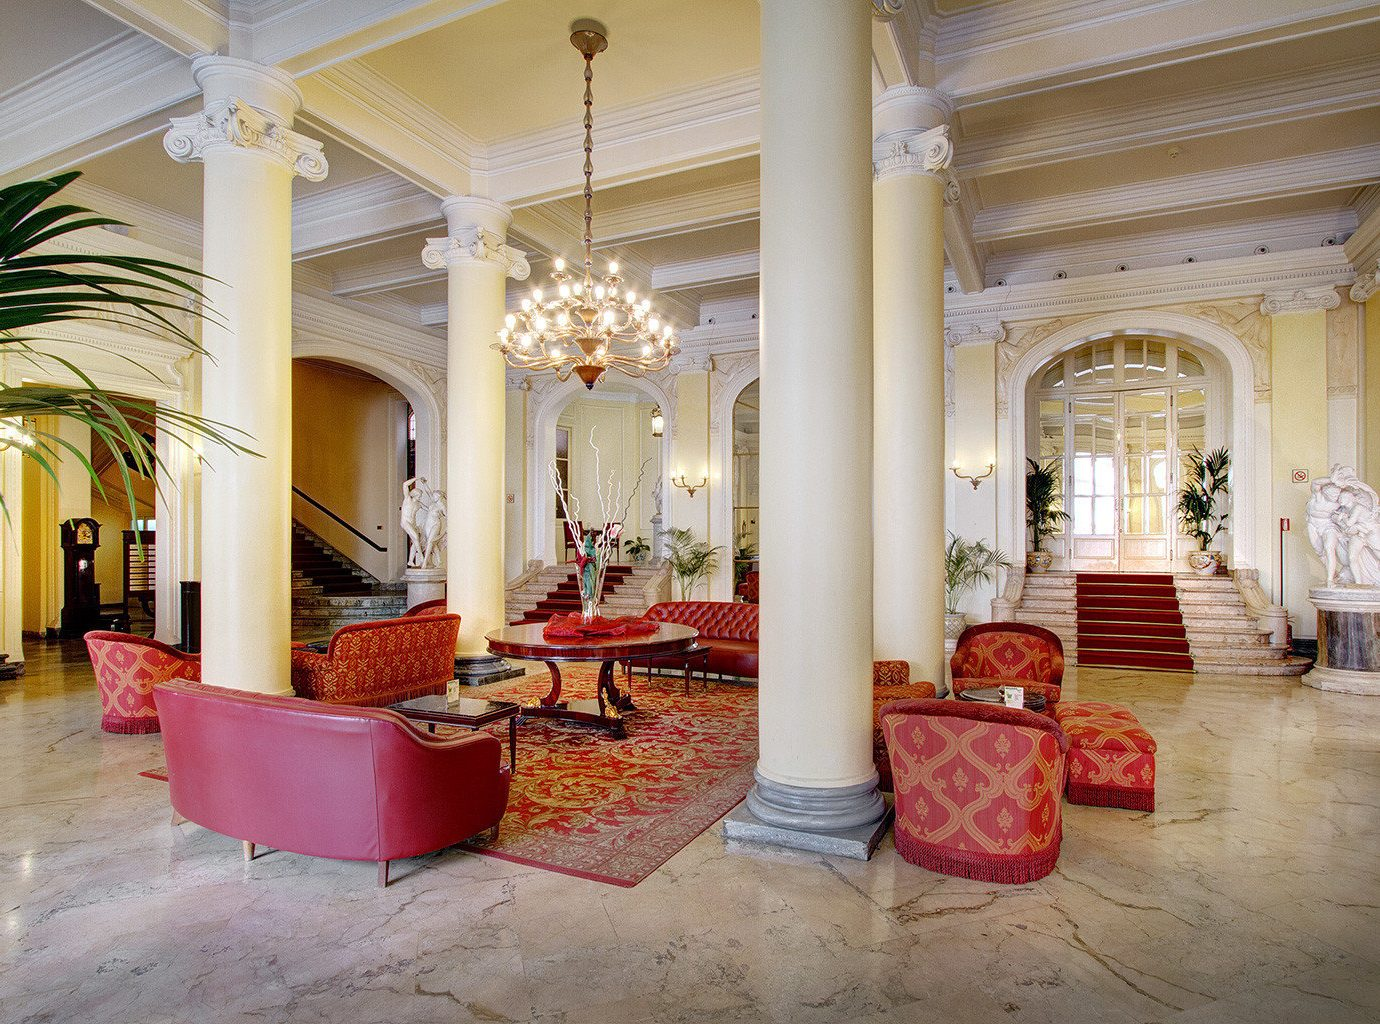 Architecture Lobby Lounge Resort property red building palace mansion aisle home hall ballroom living room hacienda flooring